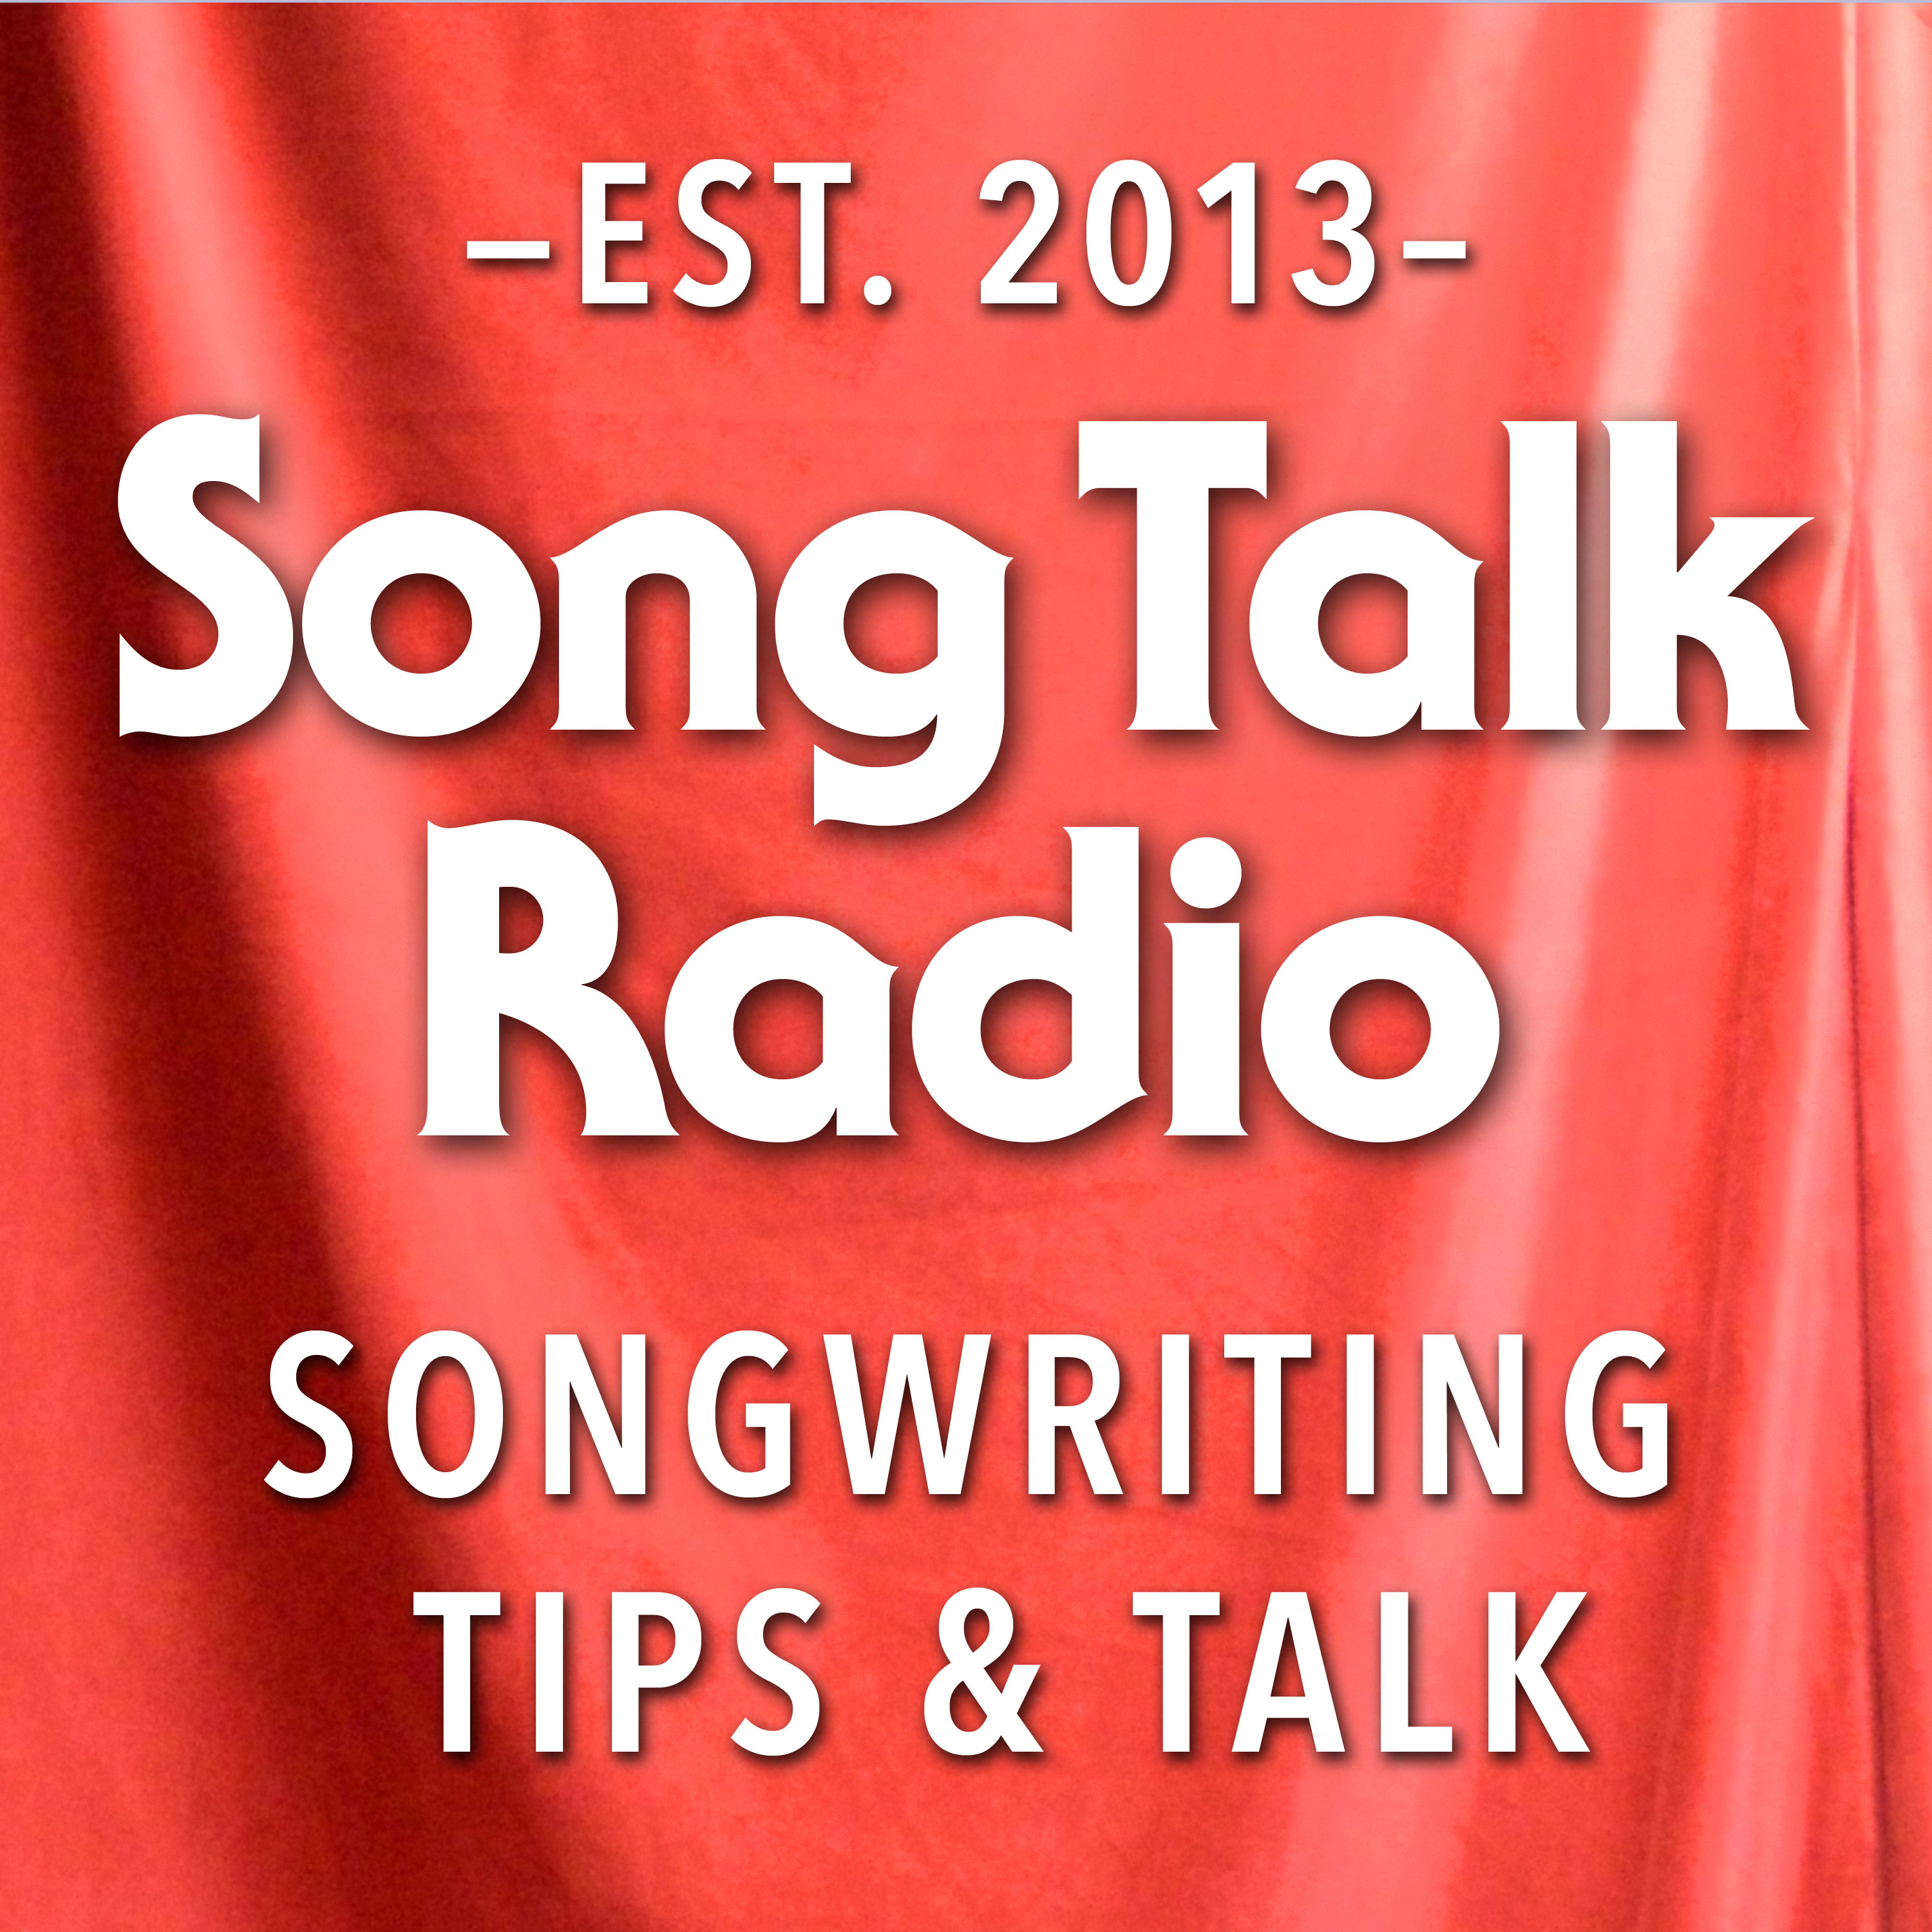 Song Talk Radio